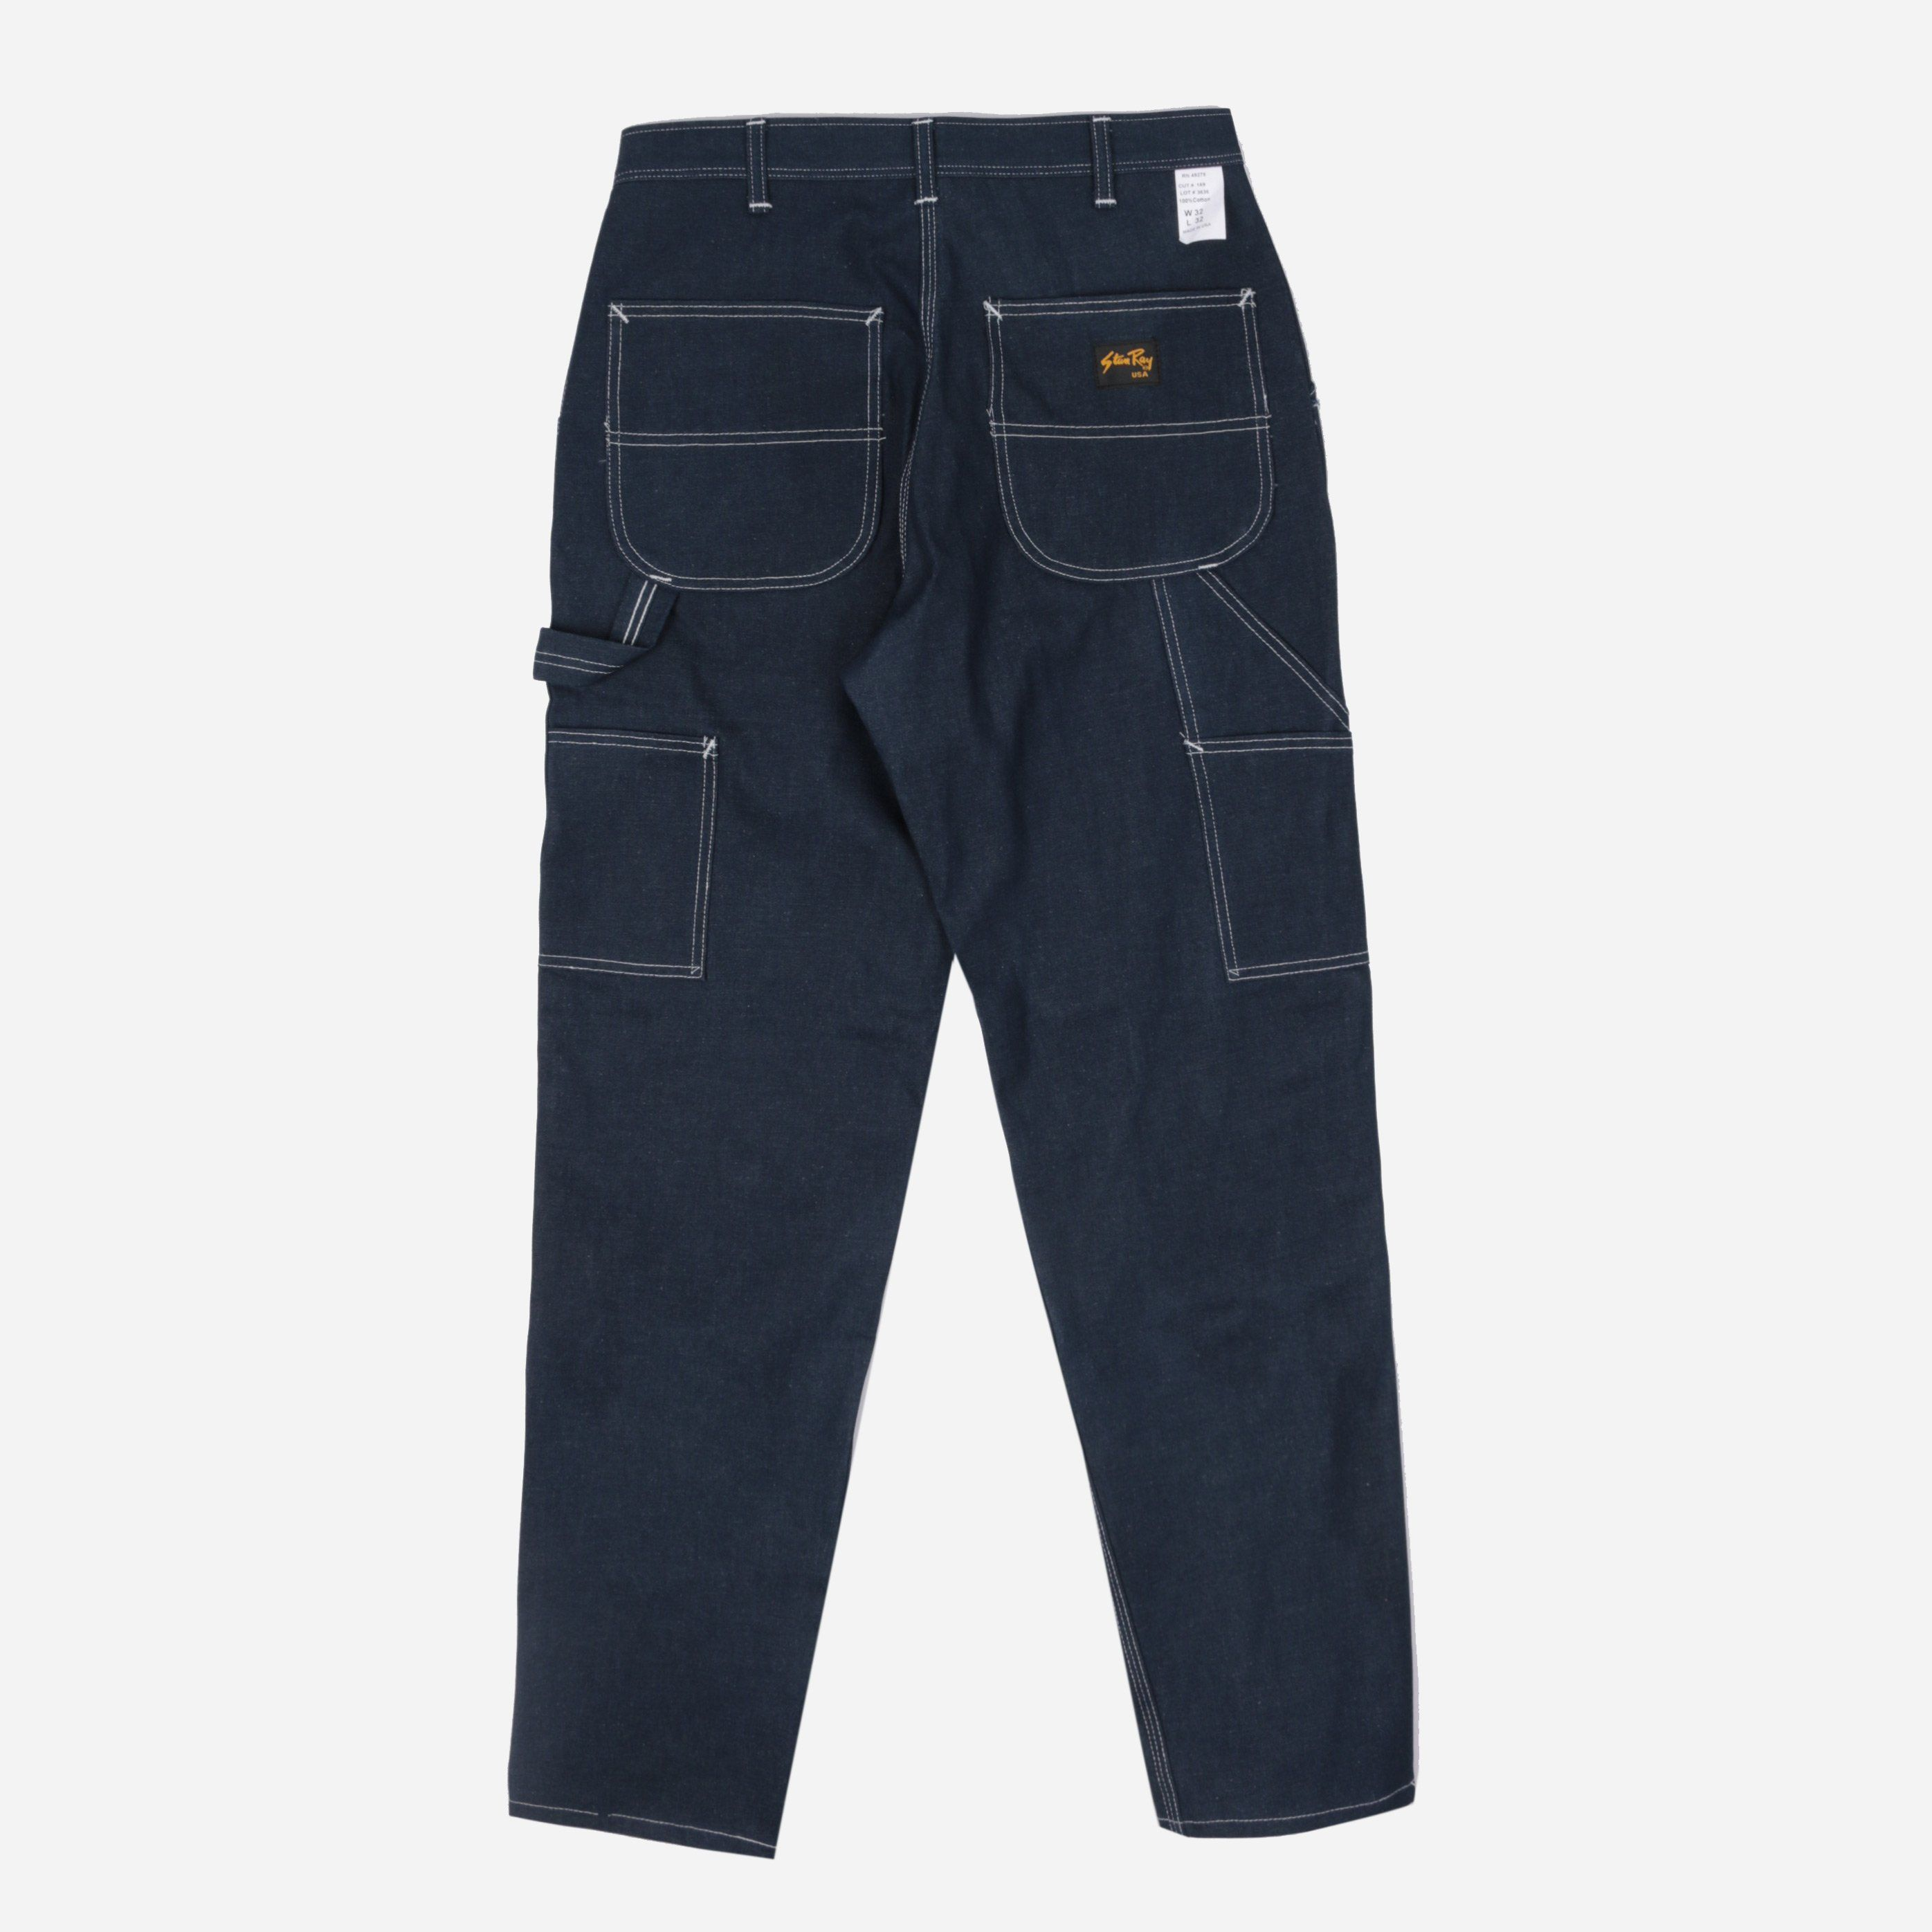 Stan Ray Painter Pant Denim